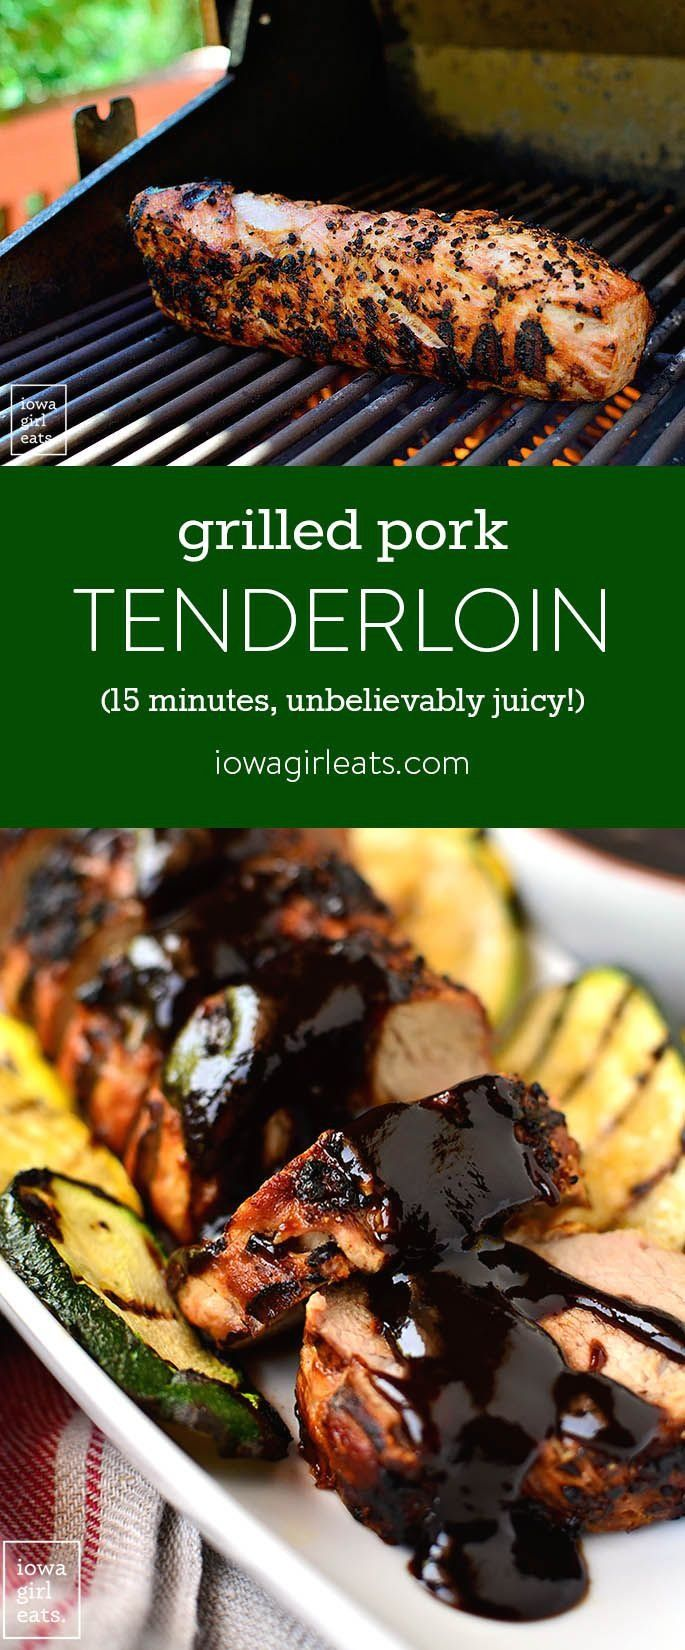 Unbelievably Juicy Grilled Pork Tenderloin Easy Grilling Recipe 1002 Easy Grilling Recipes Grilled Pork Tenderloin Tenderloin Recipes